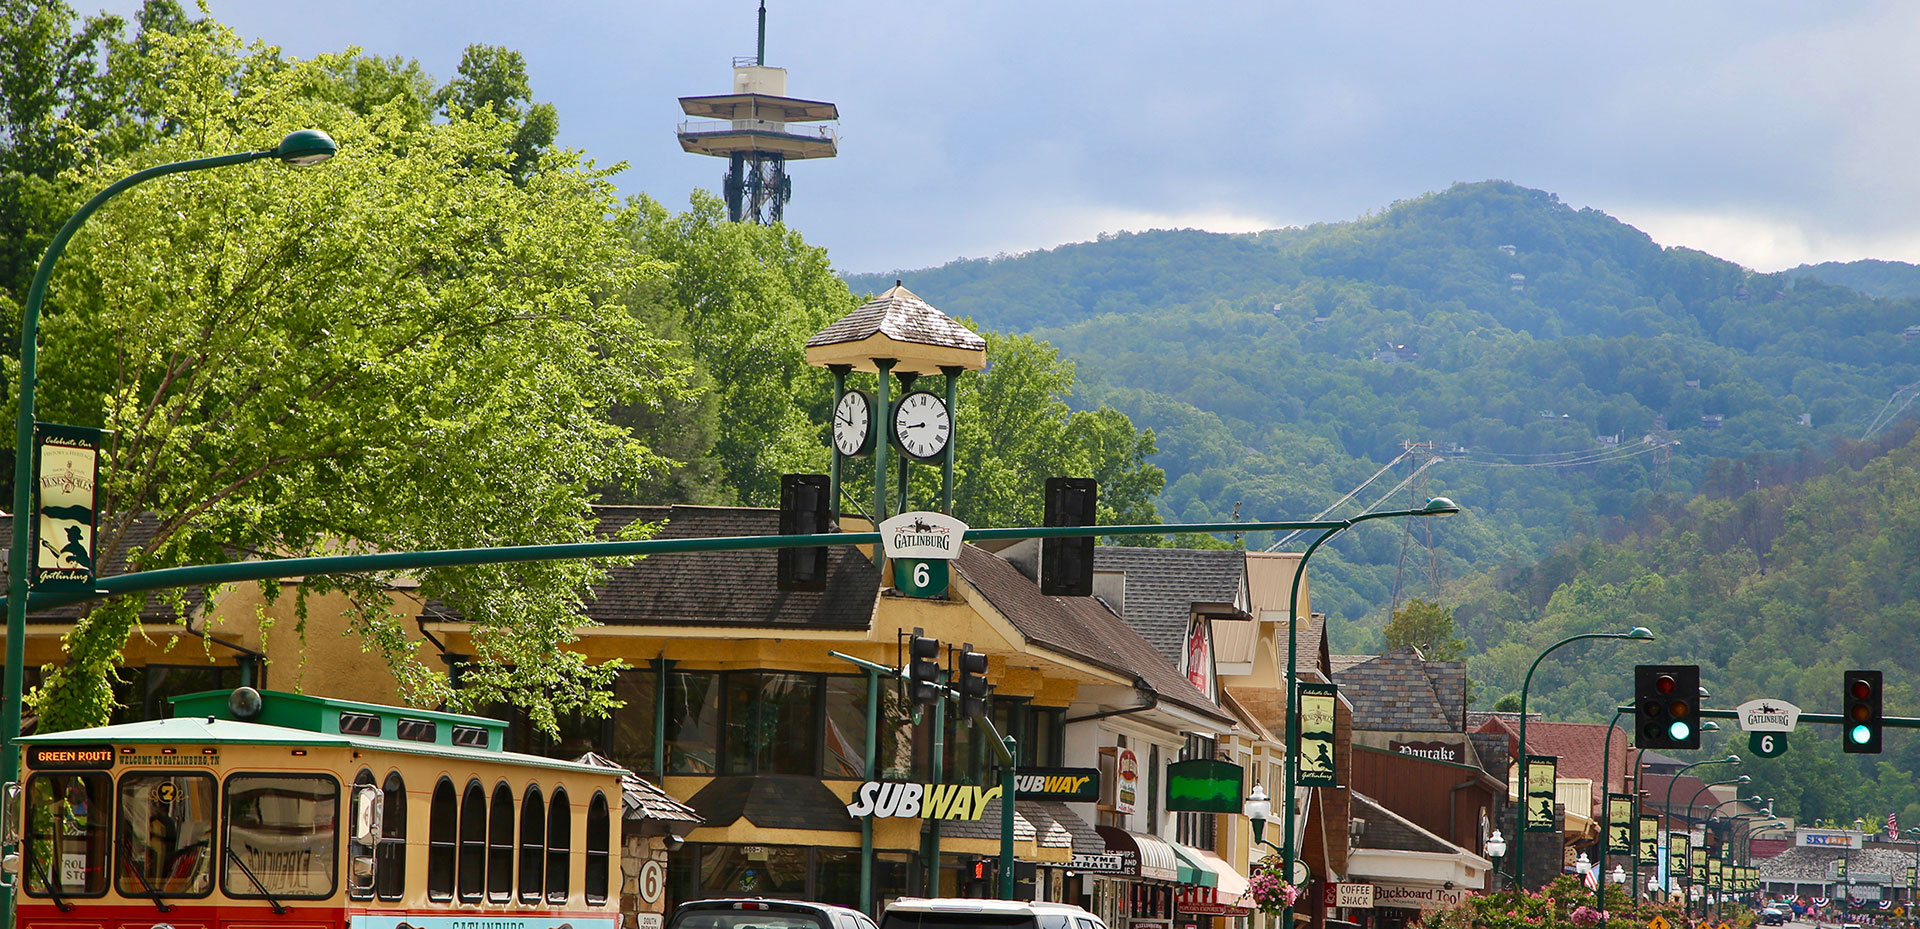 Downtown Gatlinburg (Spring 2018) | Gatlinburg Attractions | Things To Do In Gatlinburg, TN